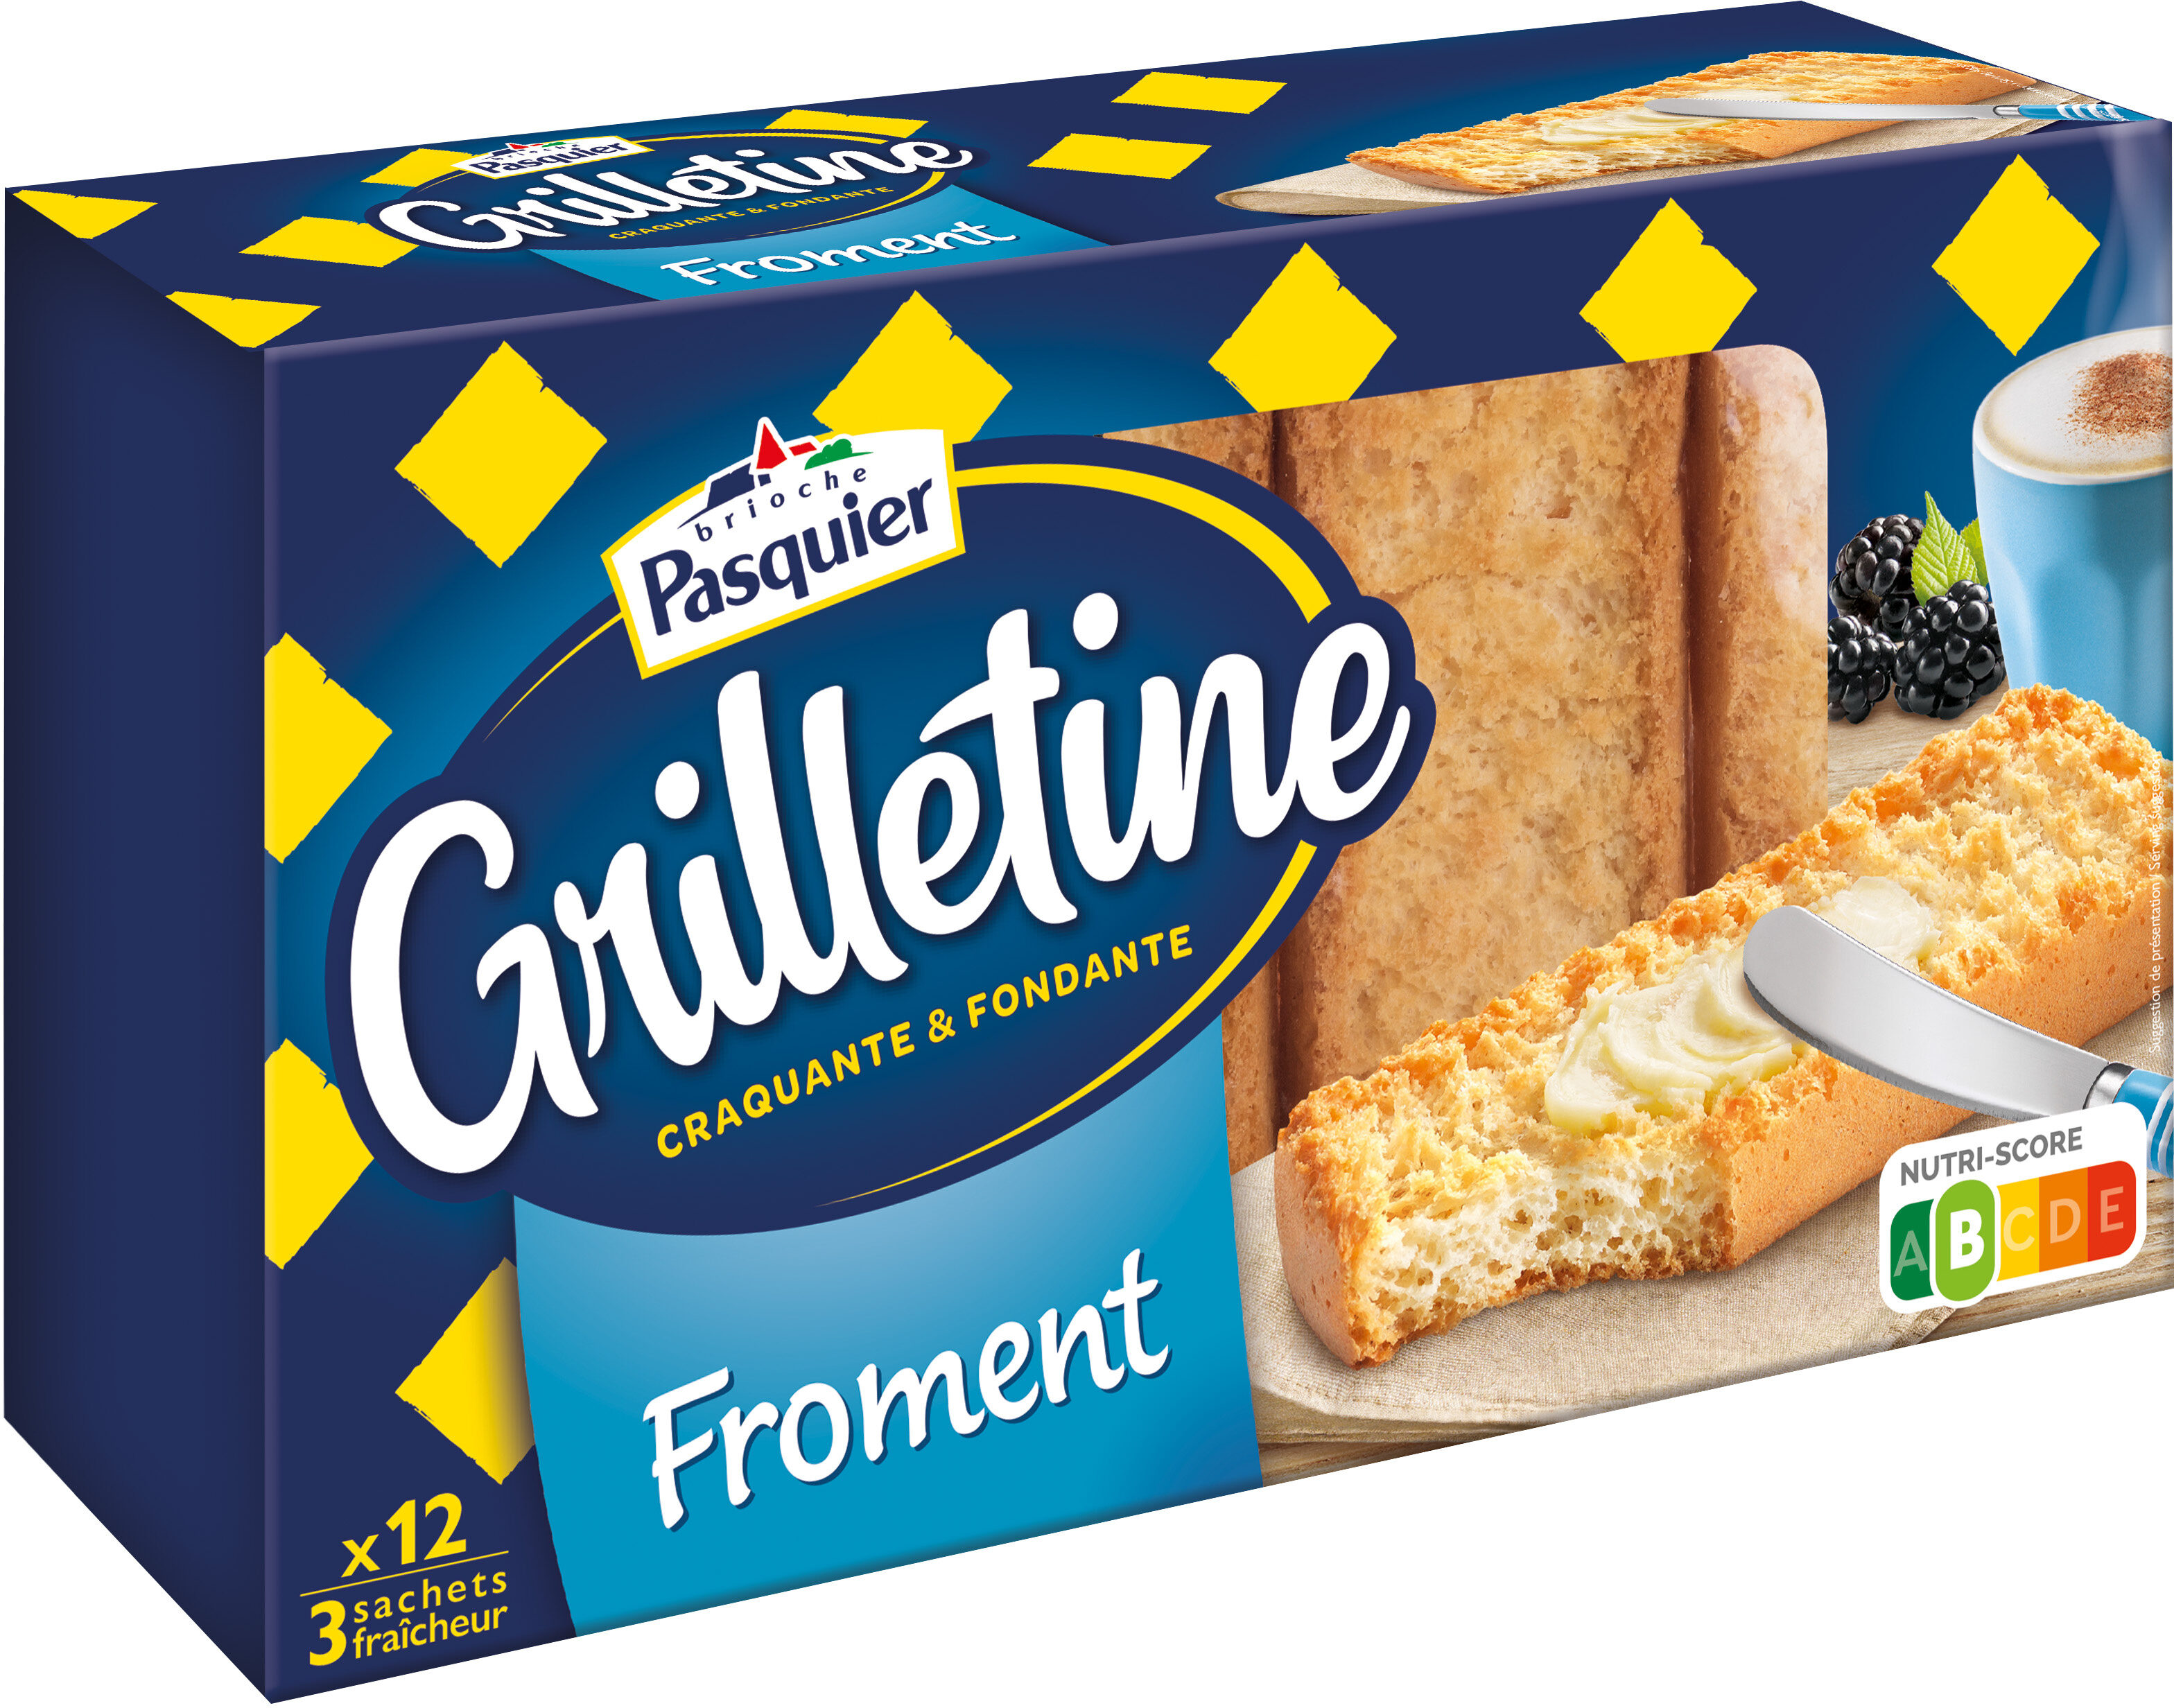 Grilletine Froment x12 - Product - fr